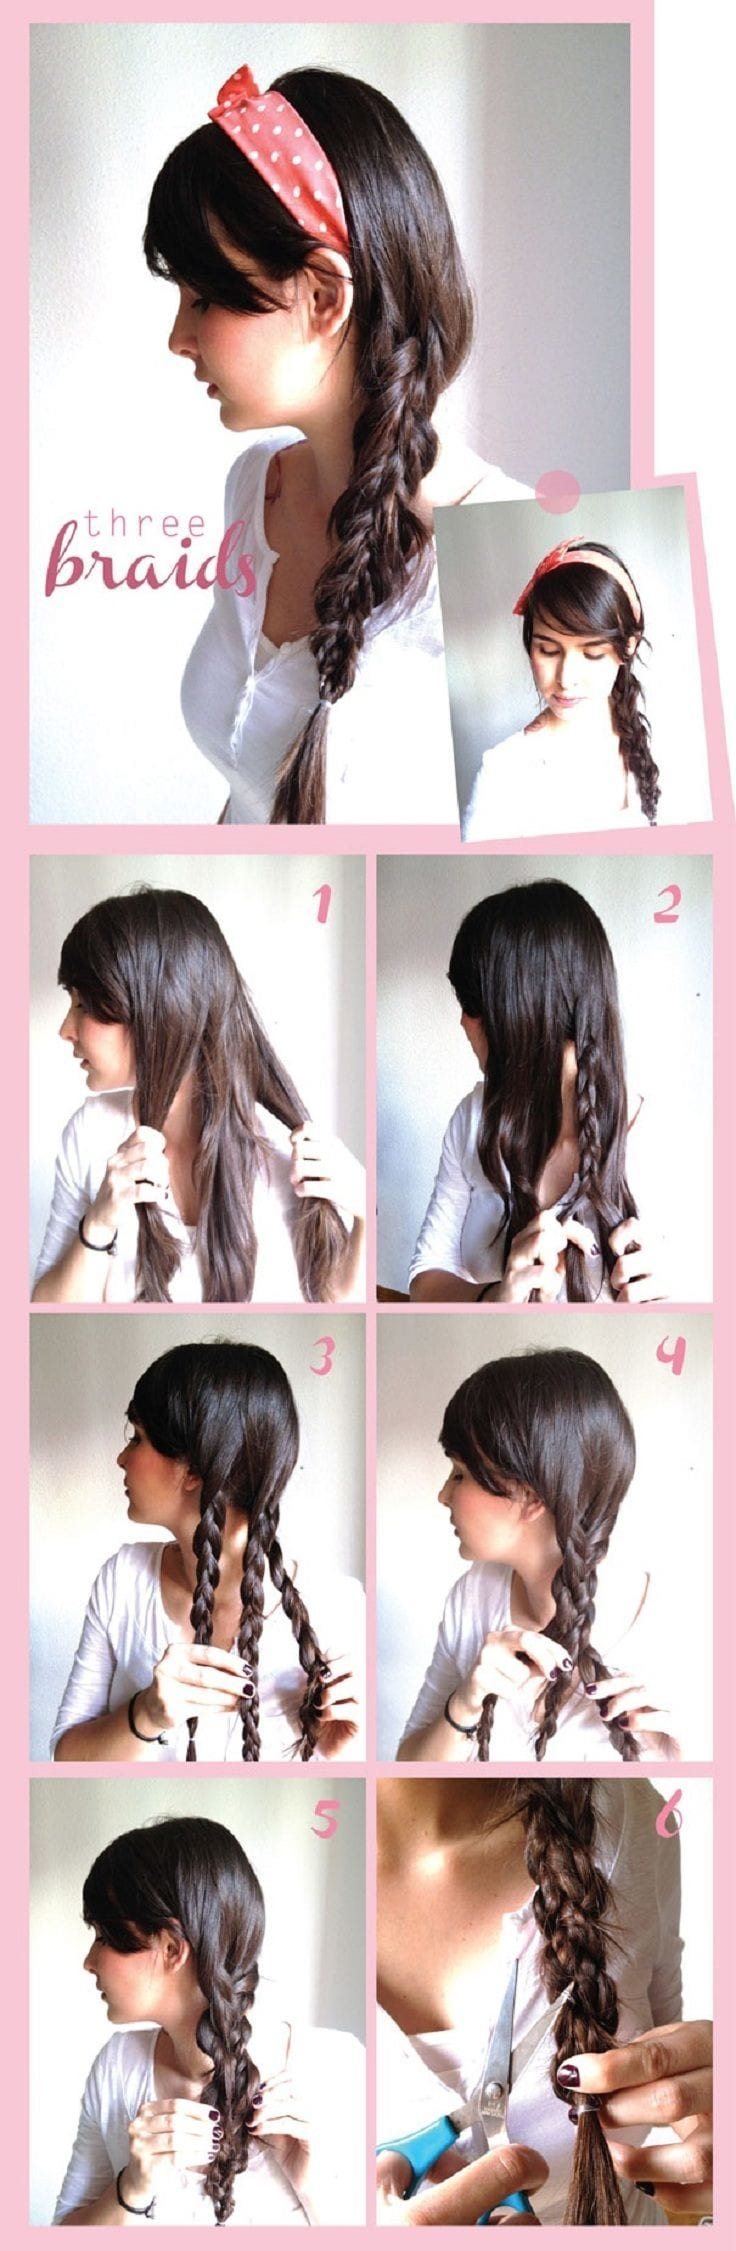 Magnificent 20 Cute And Easy Braided Hairstyle Tutorials Latest Styles Short Hairstyles Gunalazisus